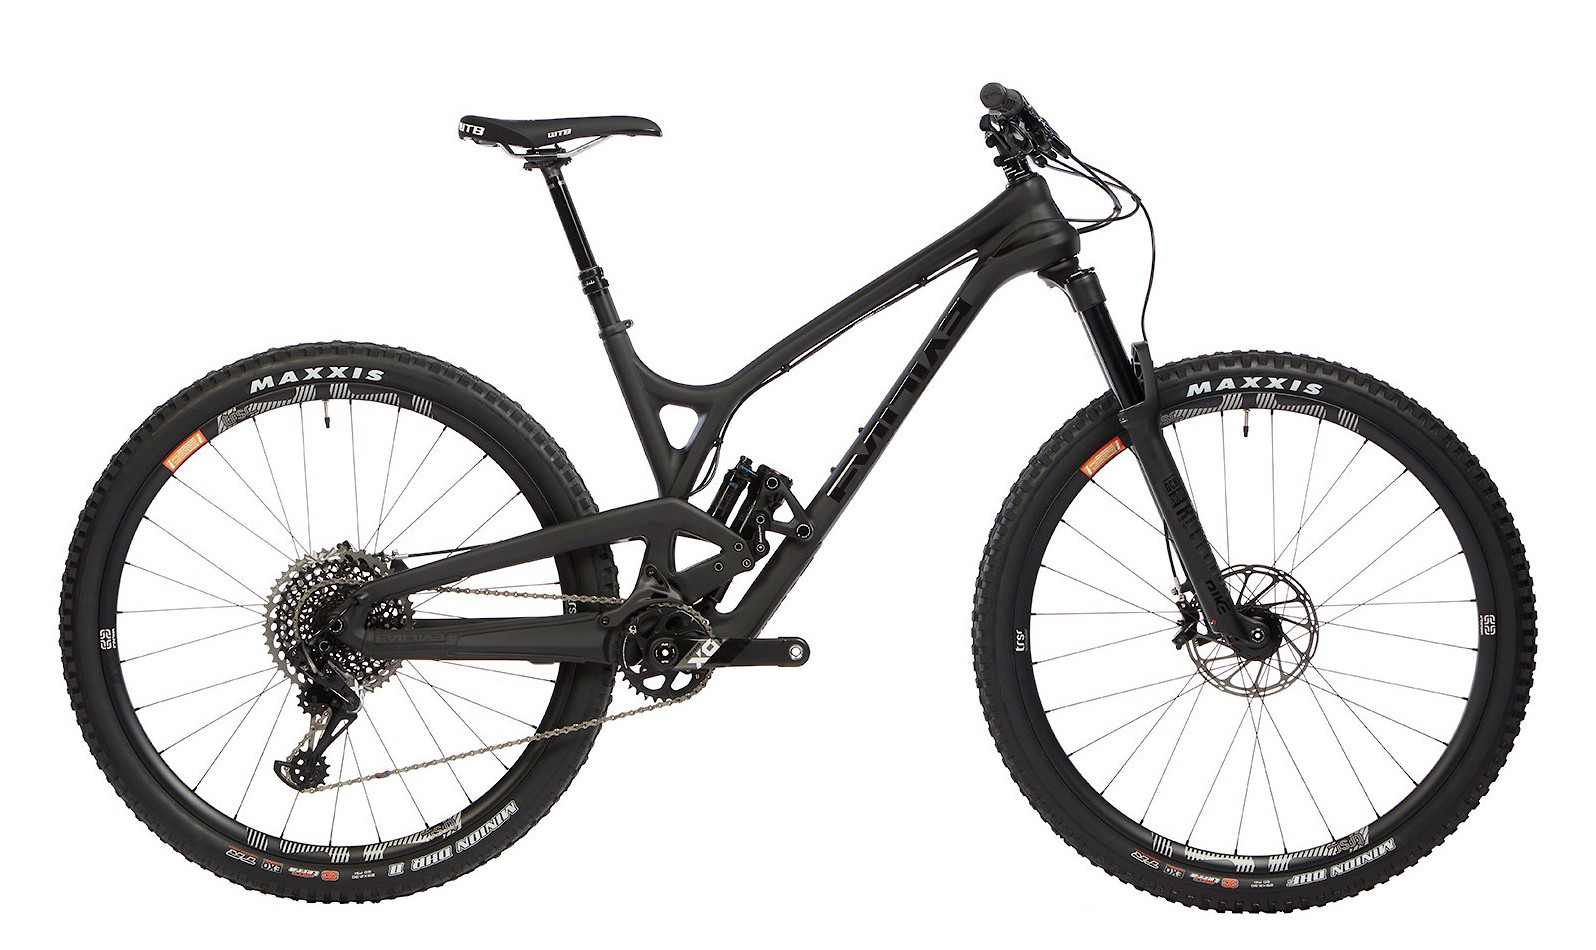 2019 Evil Offering Bike (shown with X01 Eagle)